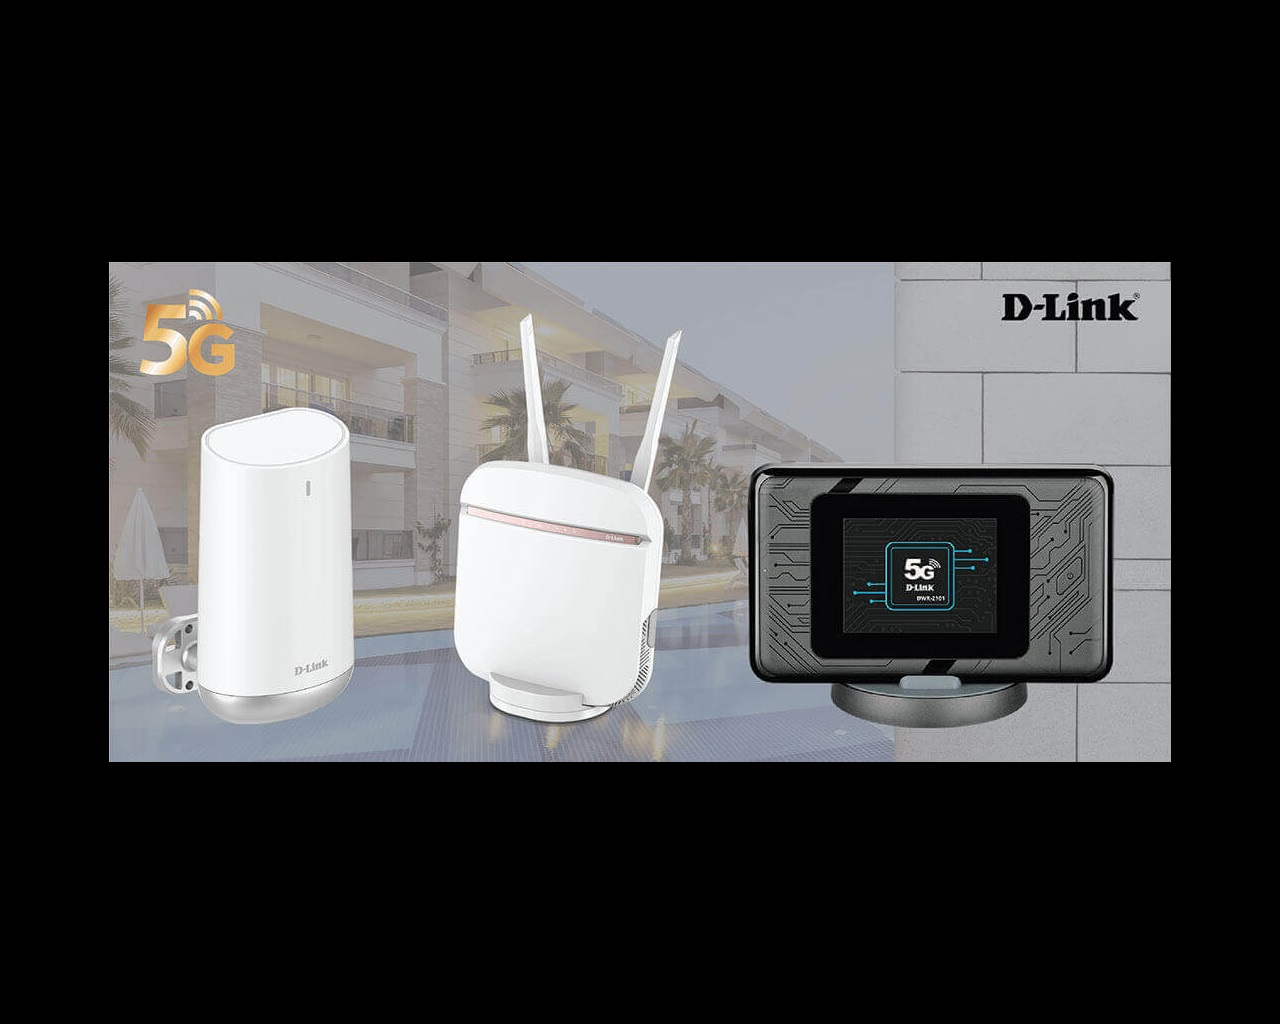 D-Link 5G Solutions